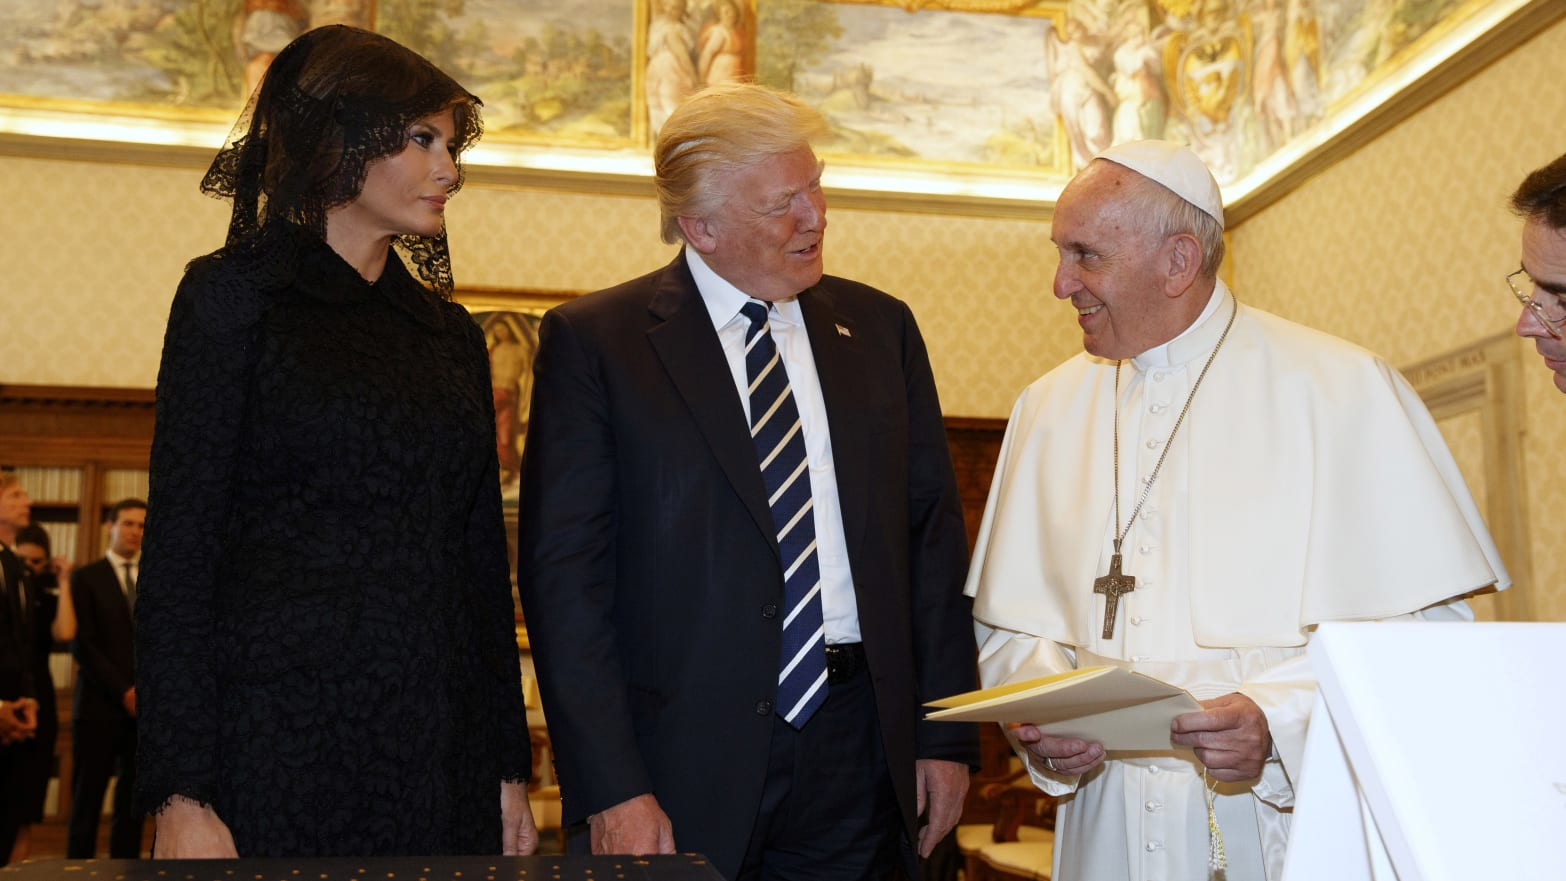 Melania and Donald Trump meet with Pope Francis in Rome.